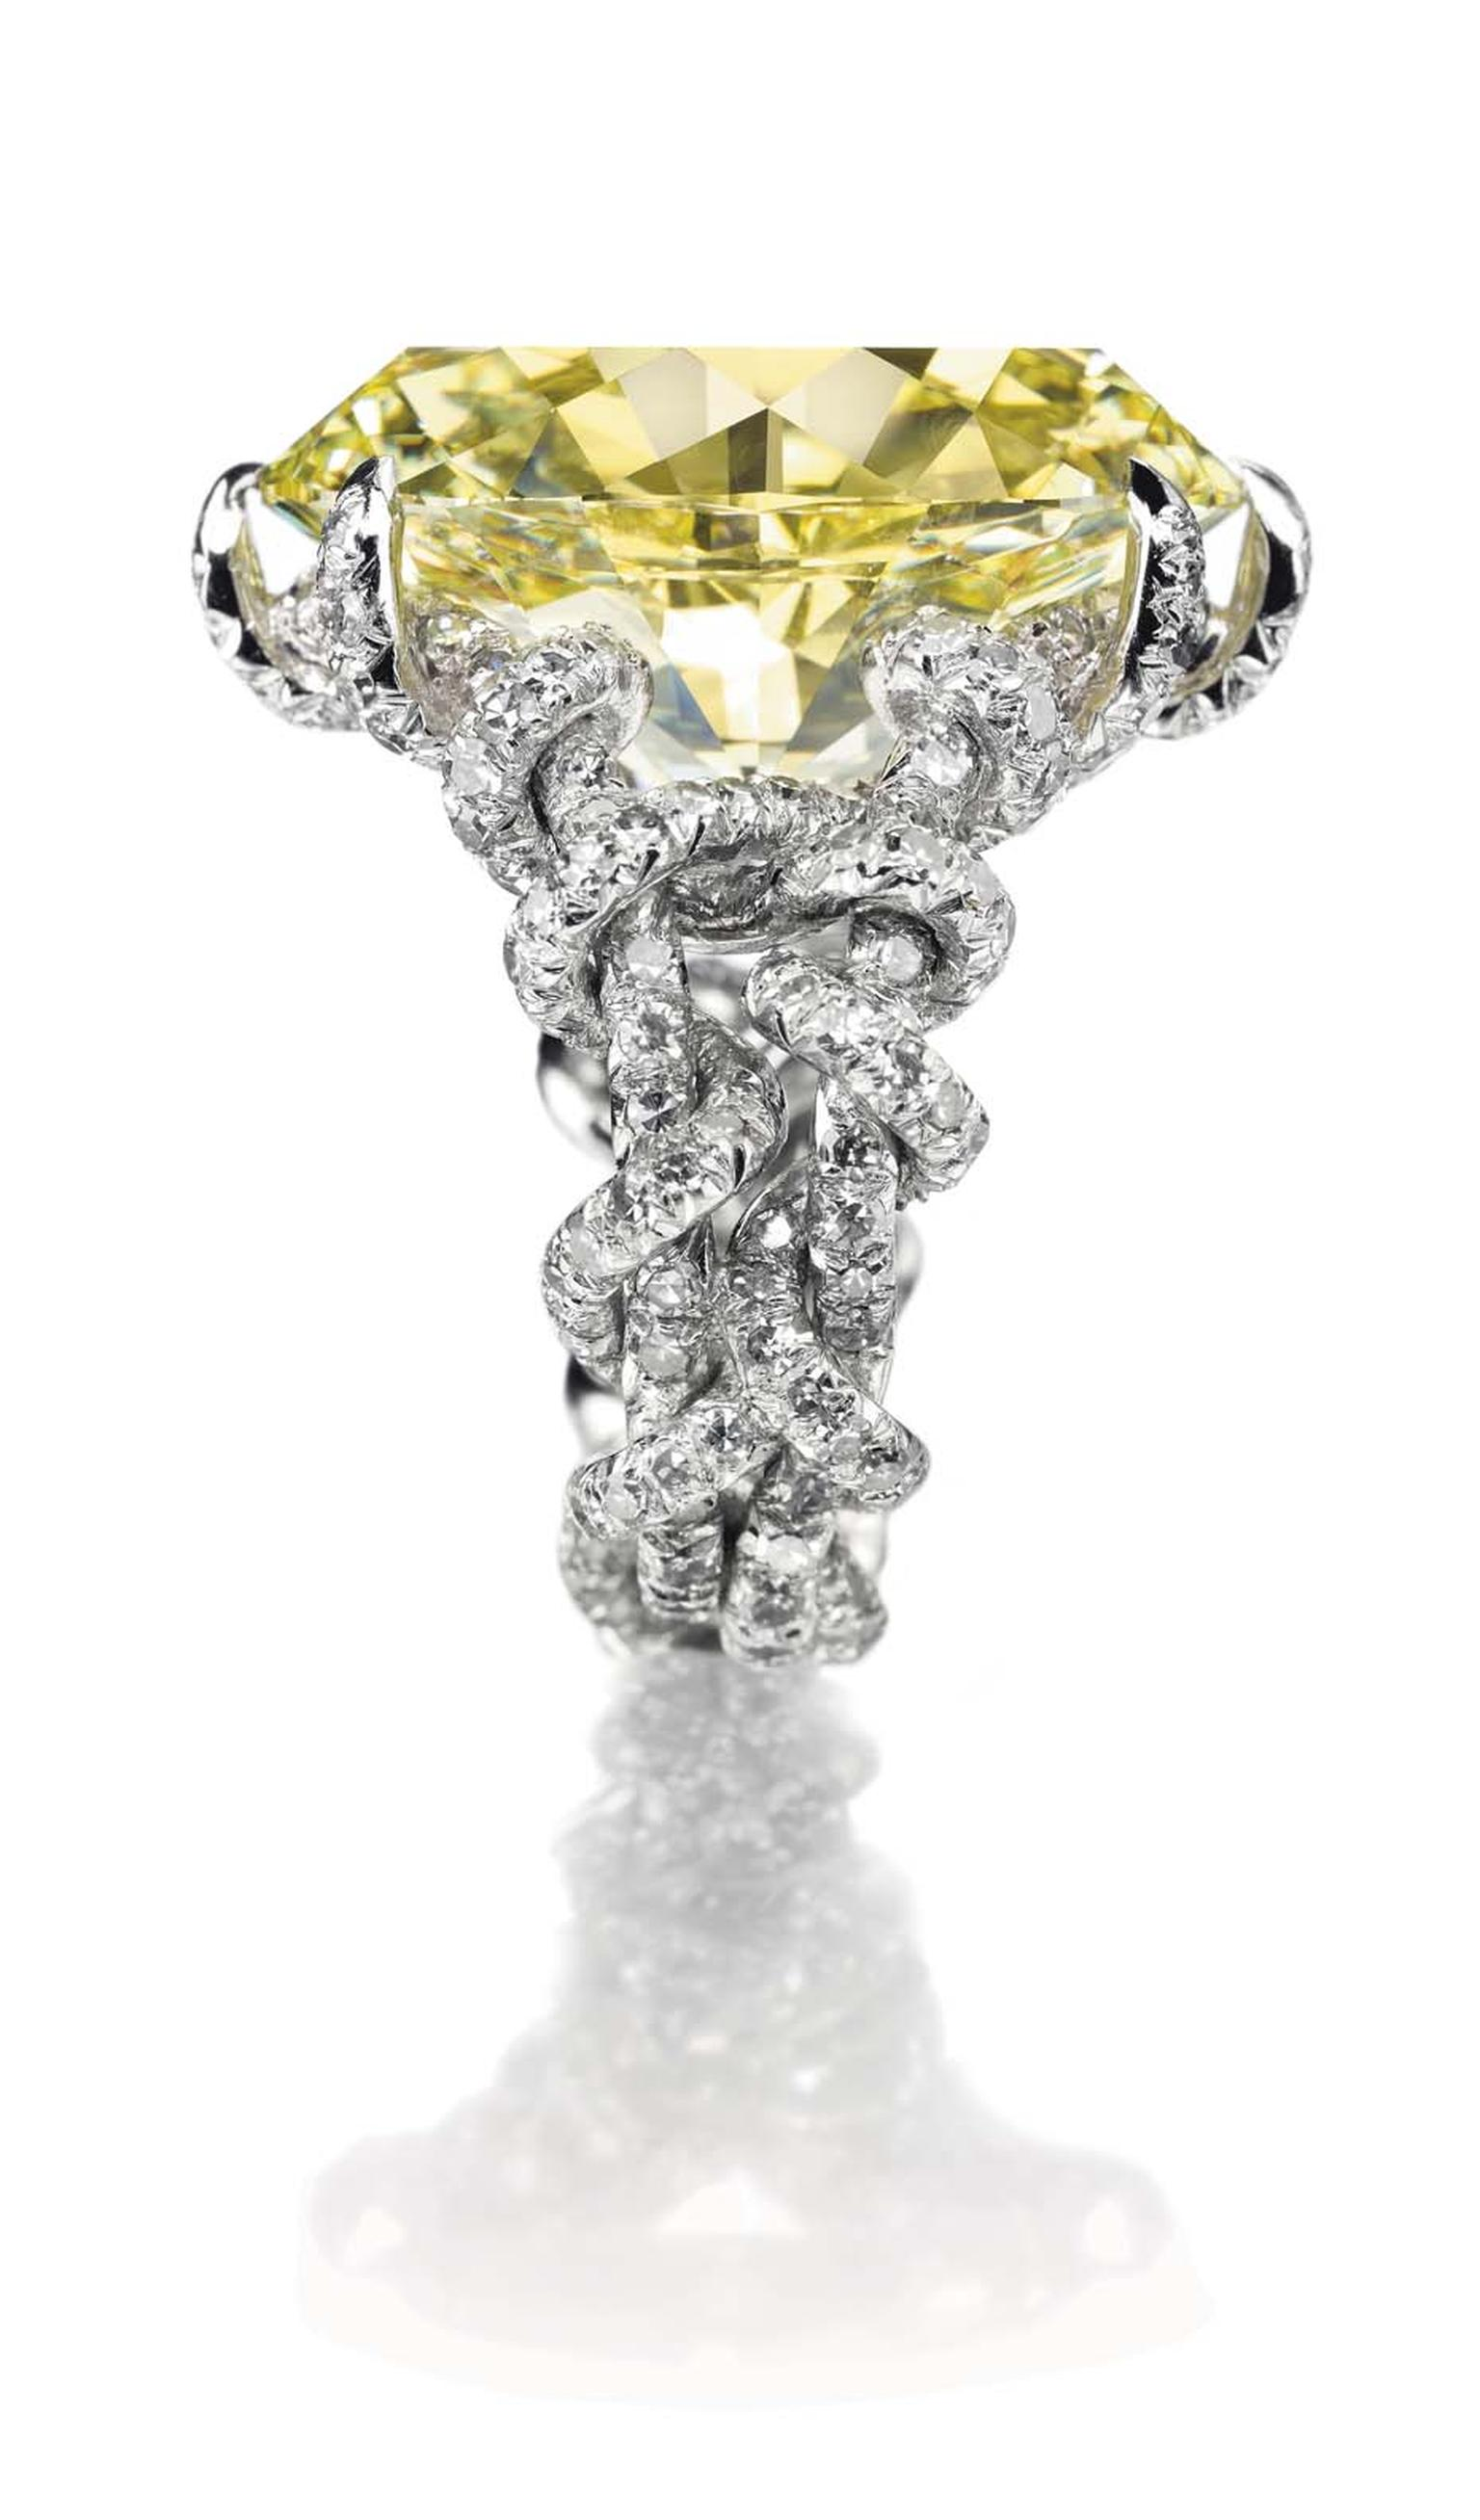 Lot 226, a coloured diamond and diamond ring by JAR, set with an oval-cut fancy intense yellow diamond weighing approximately 15.75ct, mounted in platinum (estimate: US$500-700,000)